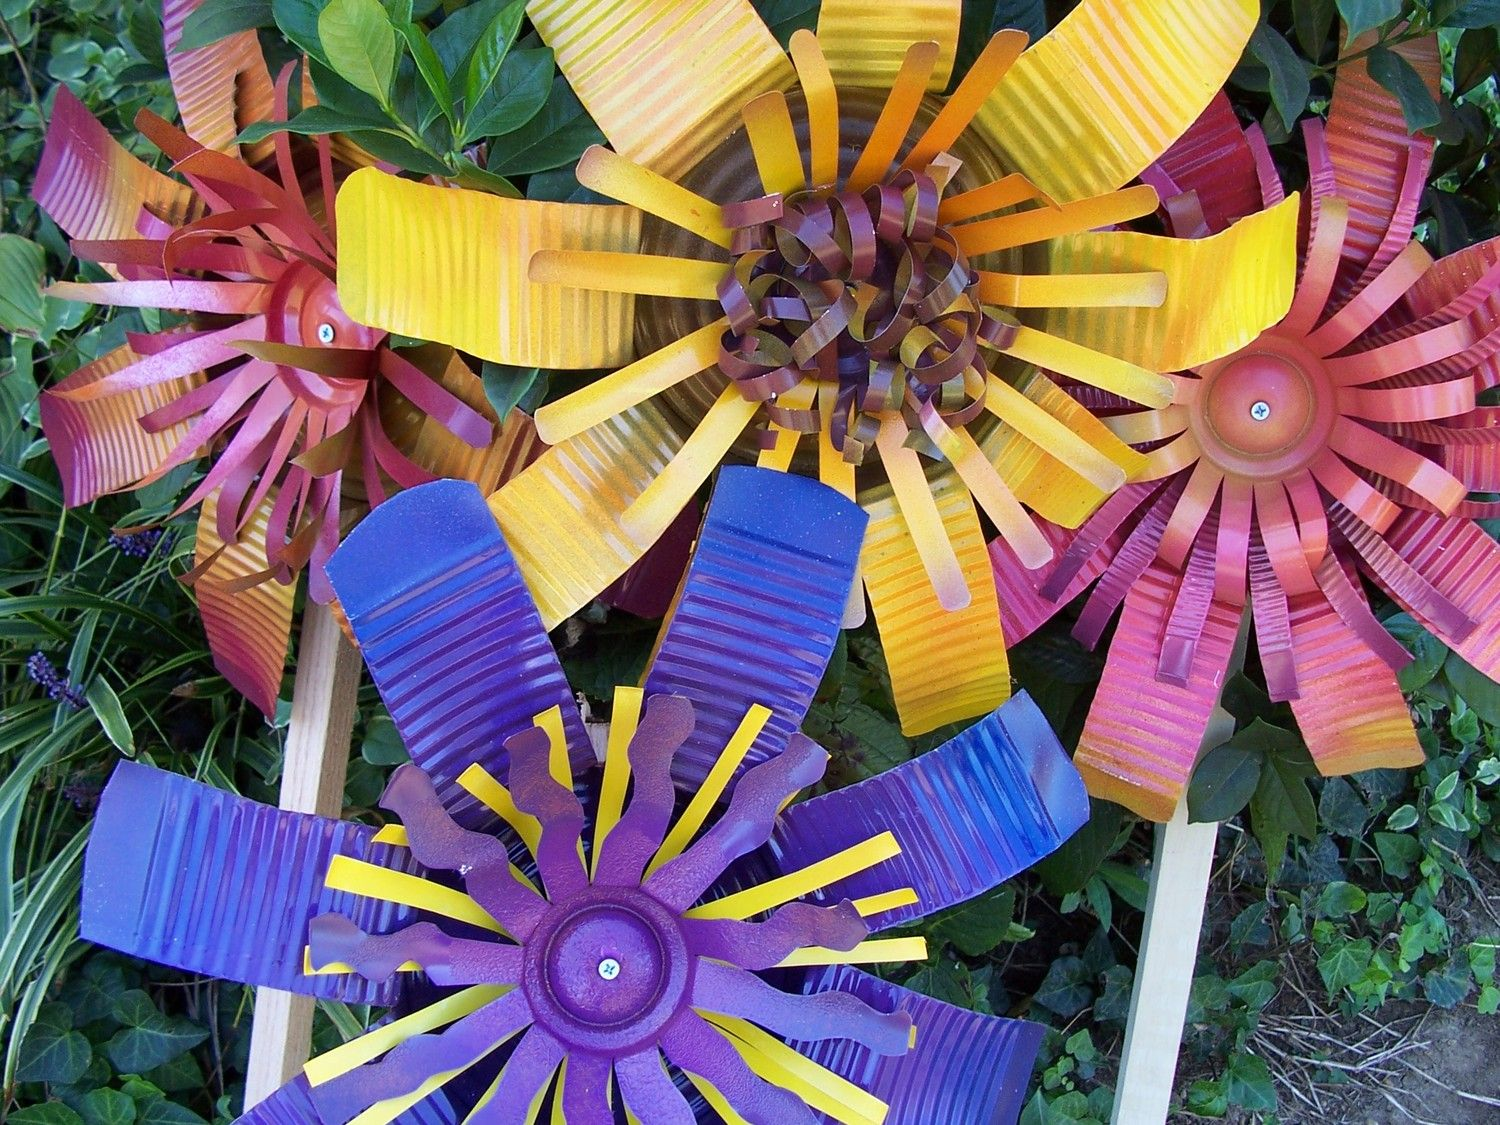 Upcycled/Recycled Metal Can Flowers Garden Art In Custom